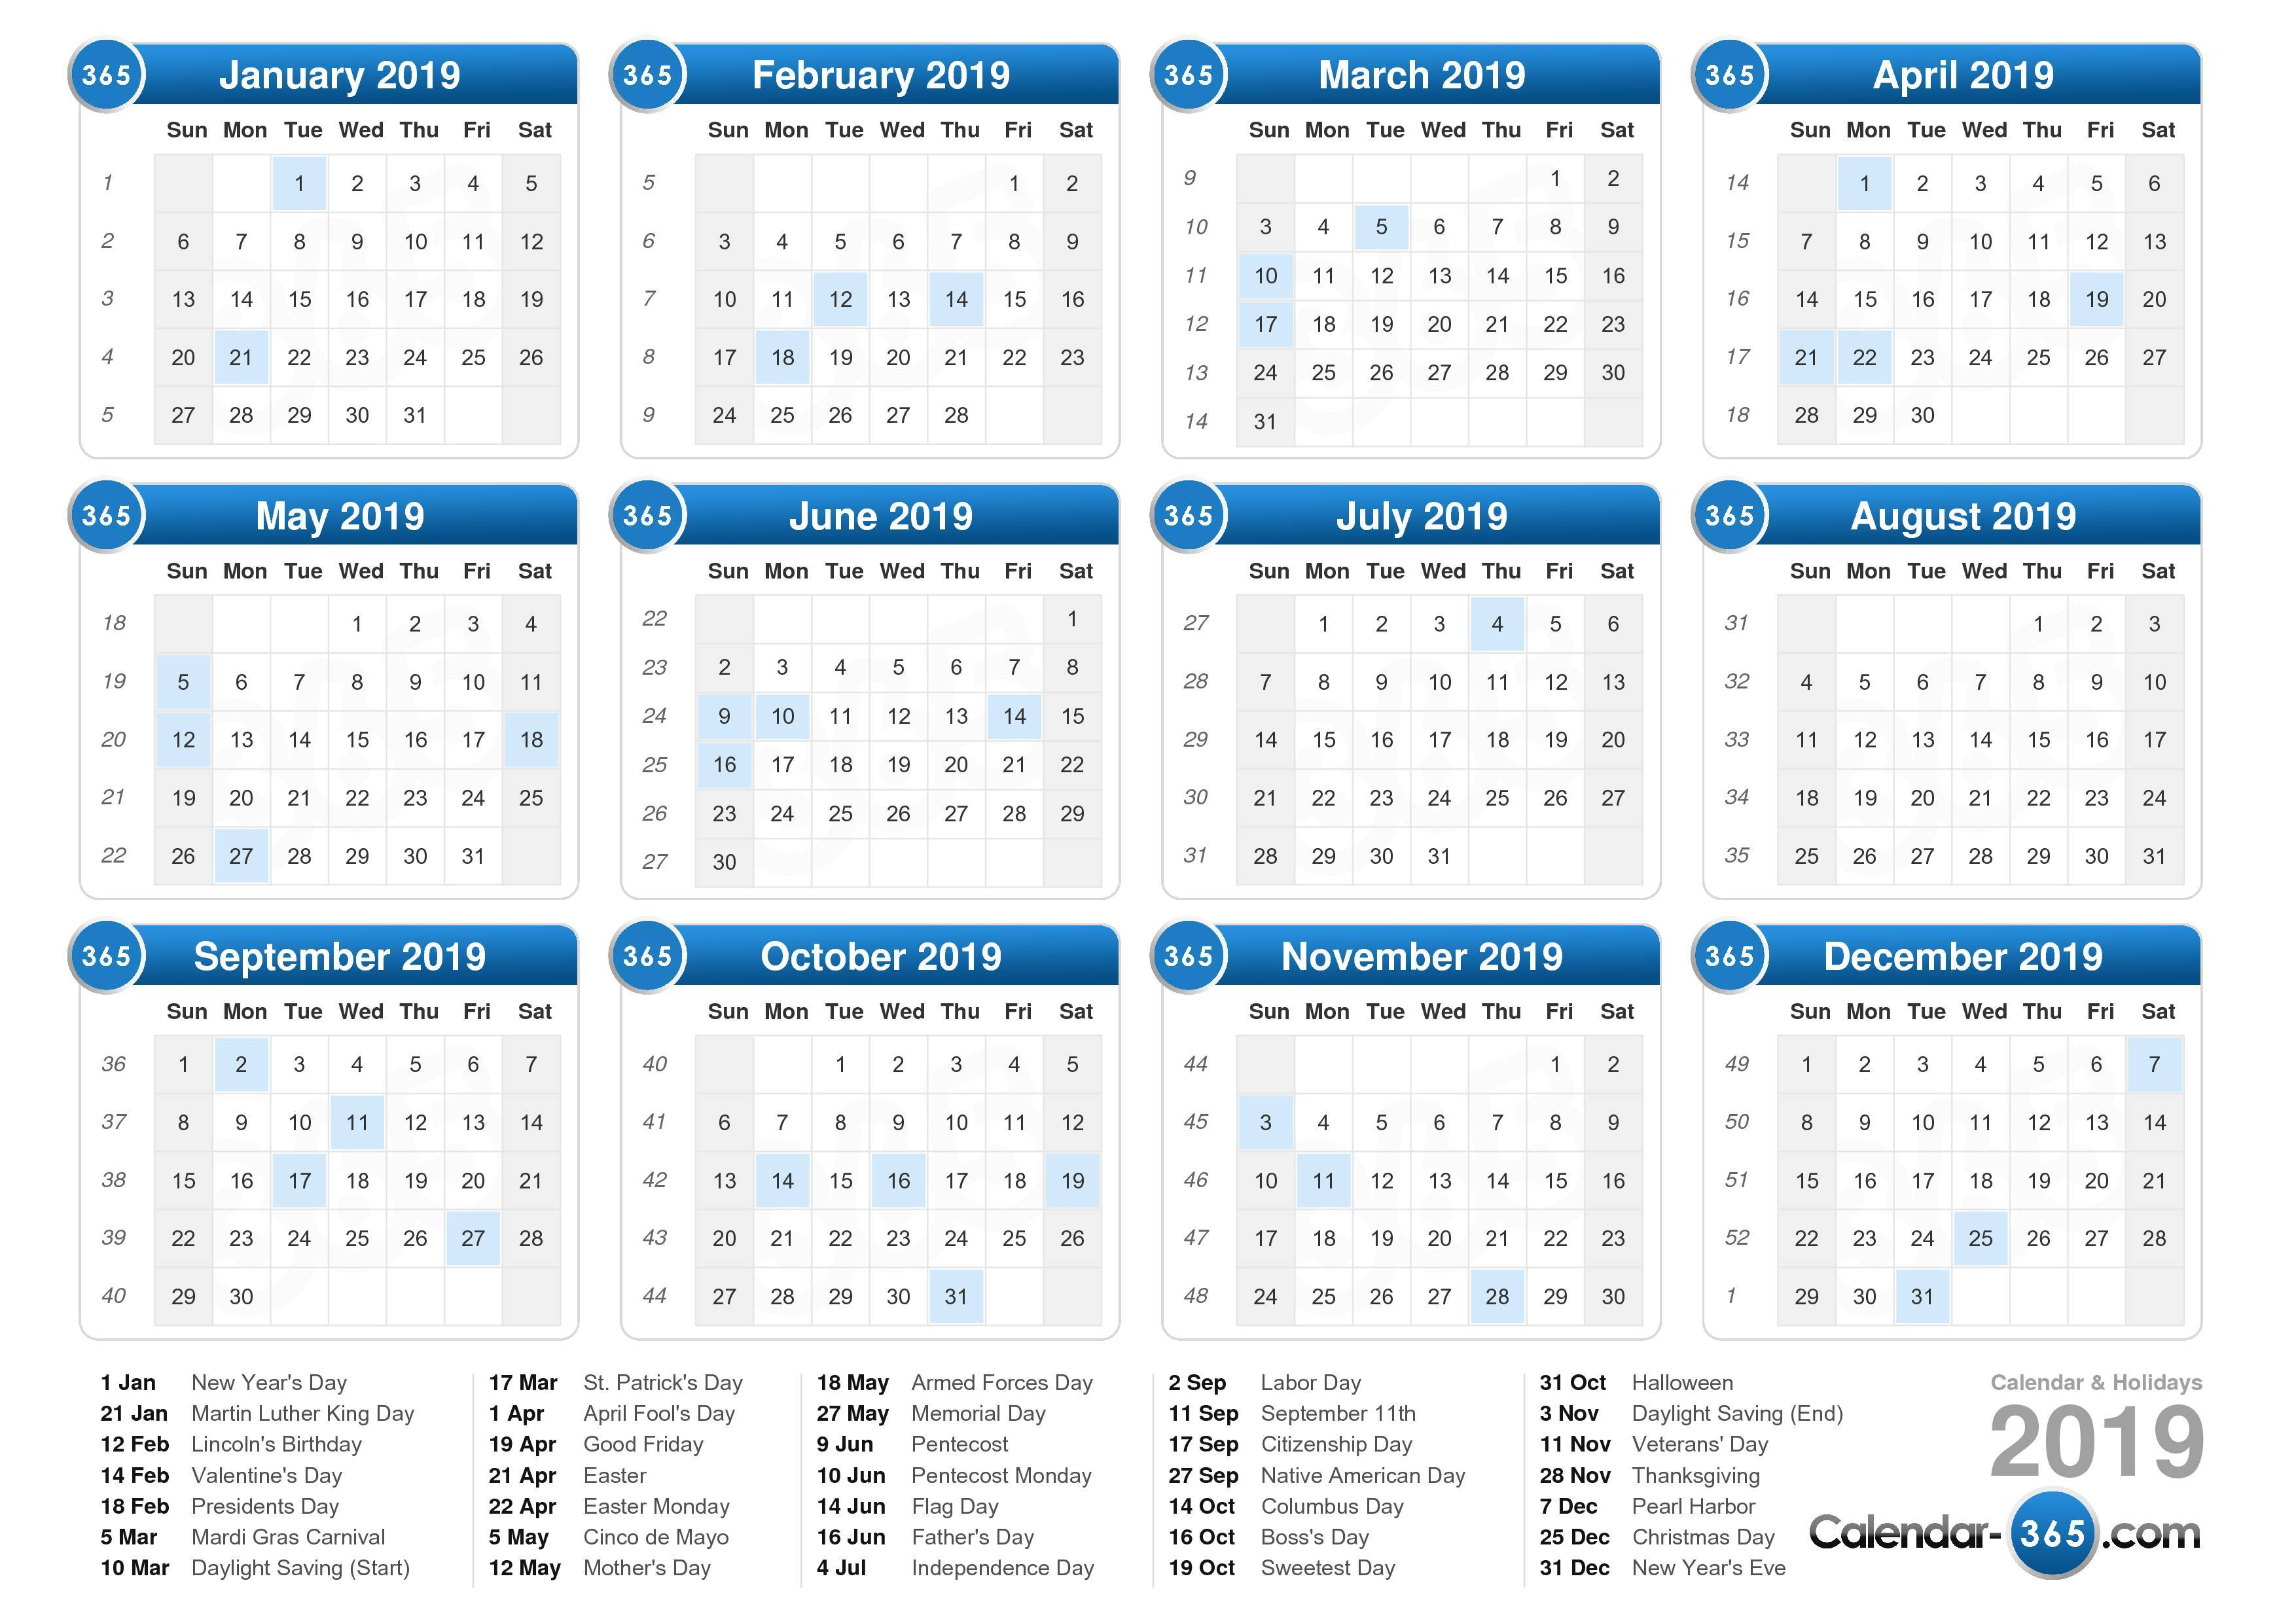 Day Of Year Calendar 2019 With